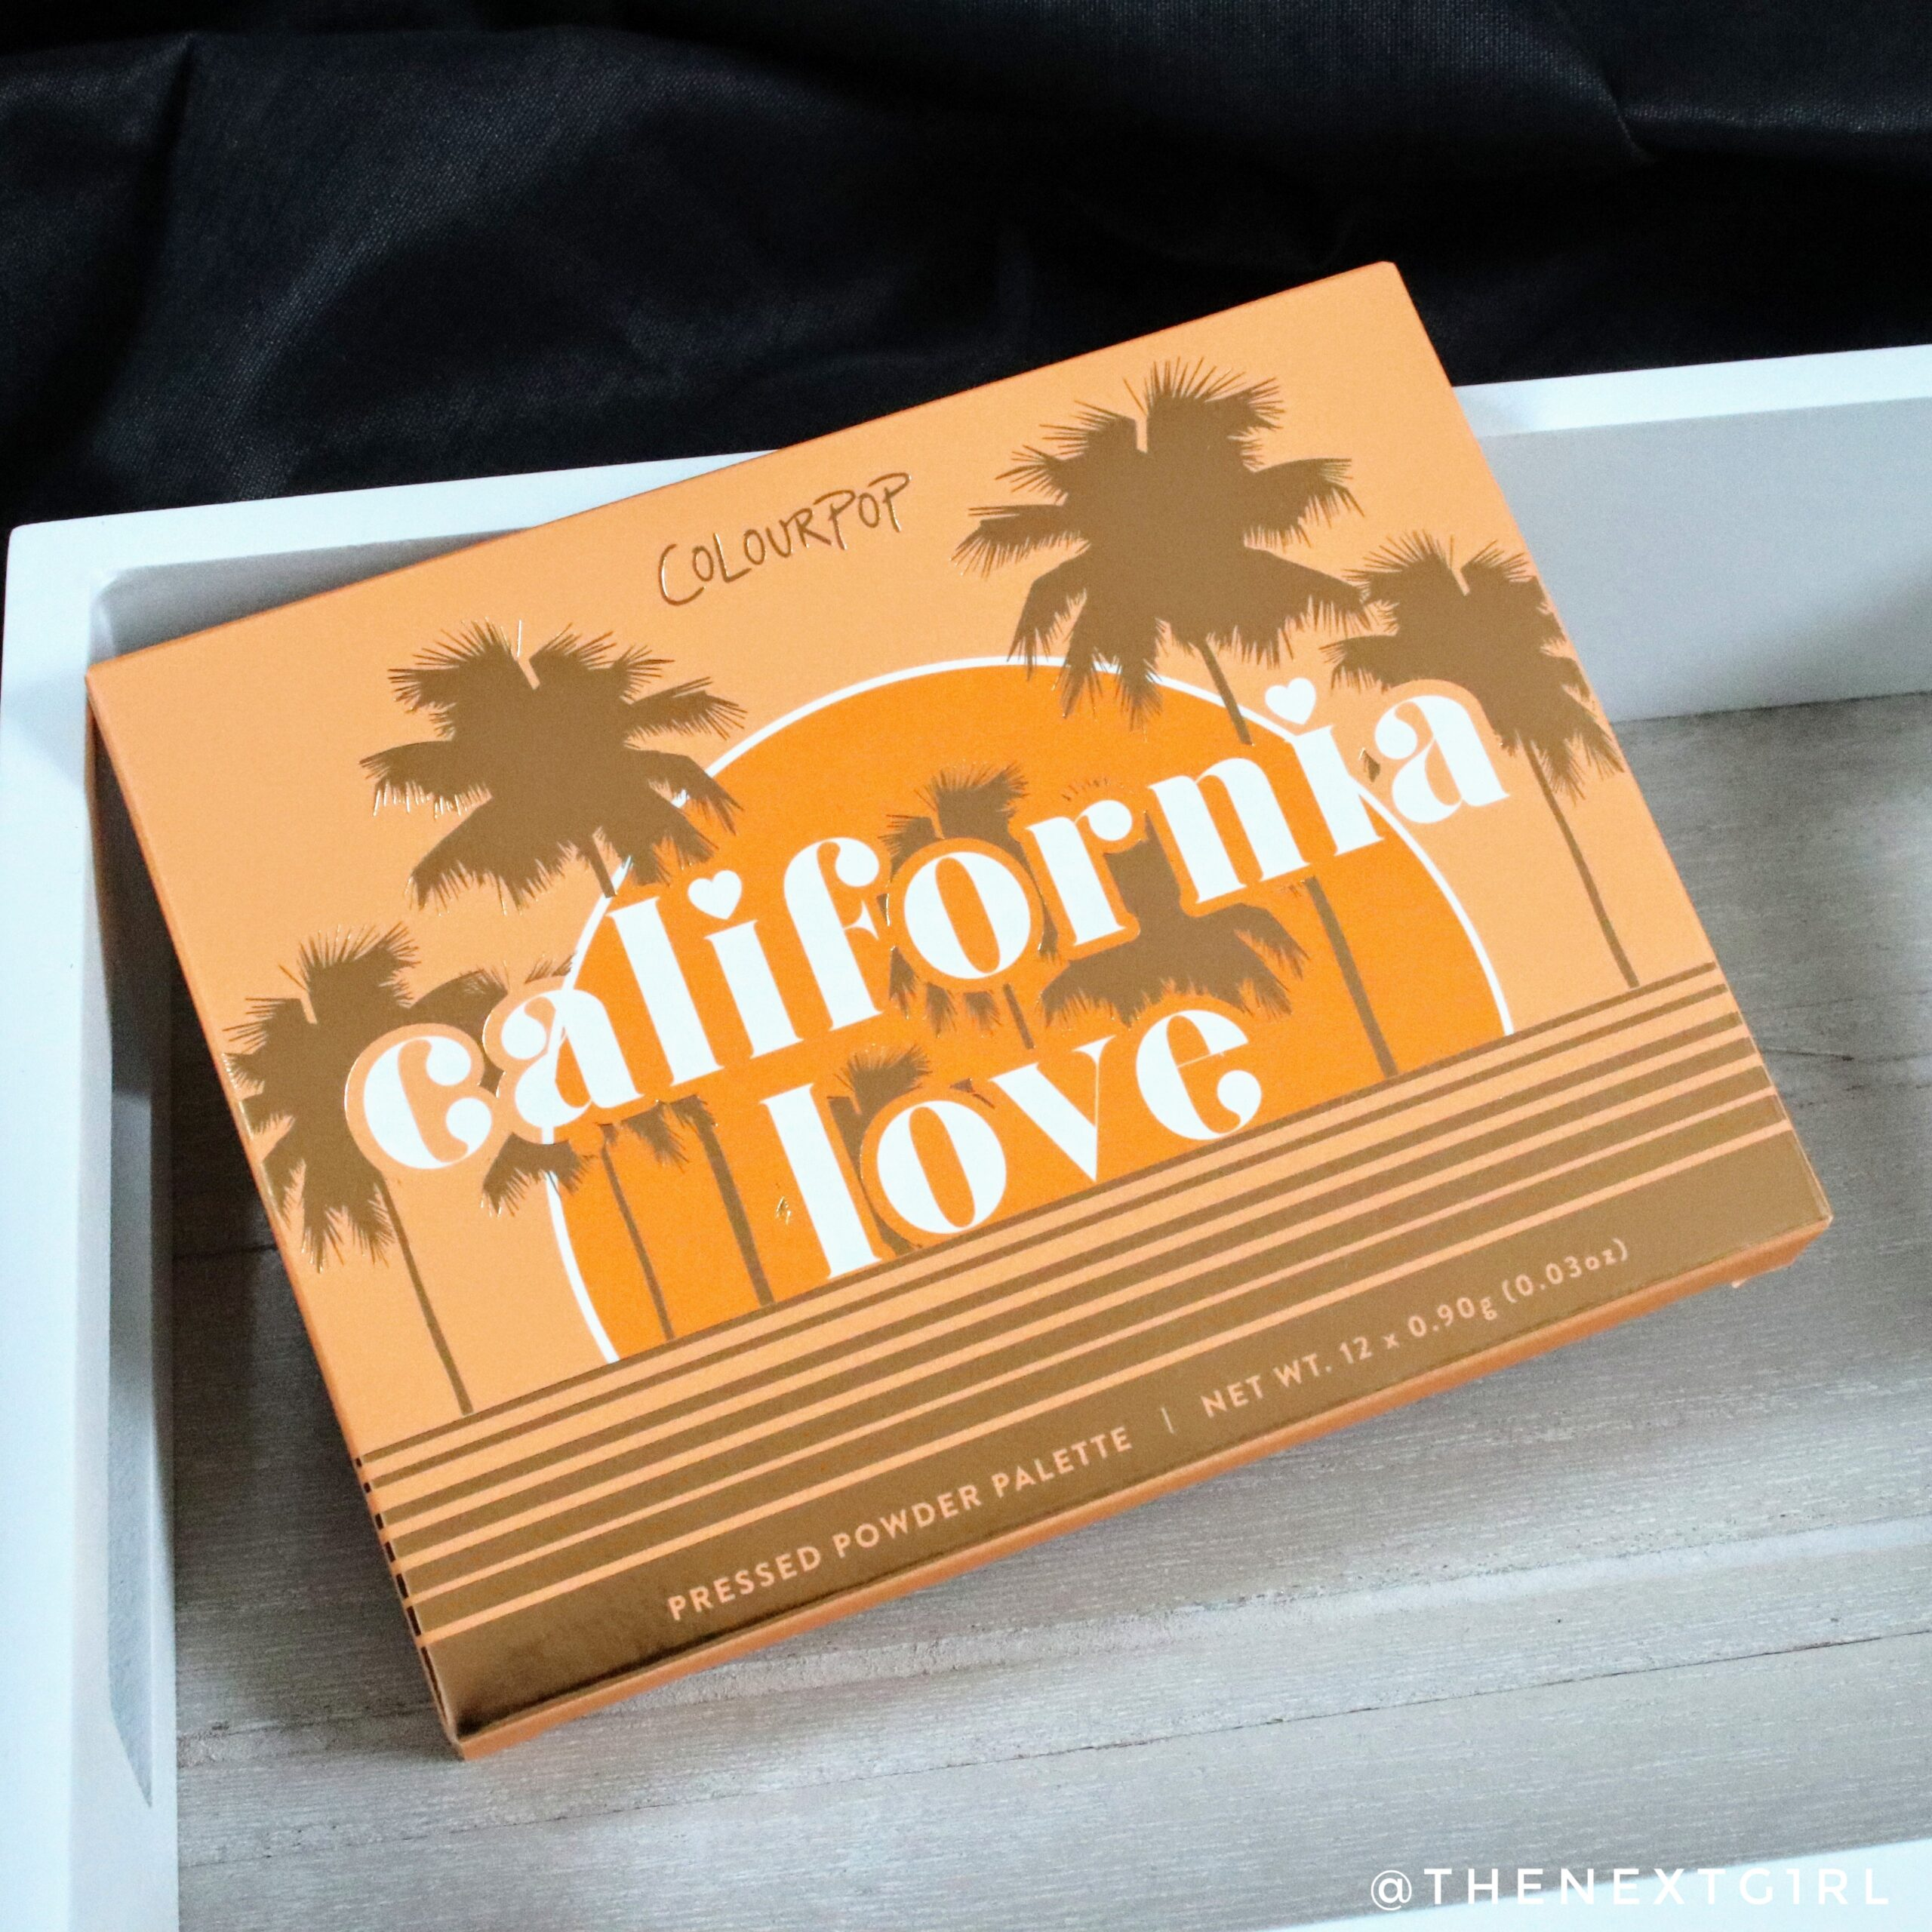 Colourpop California Love palette